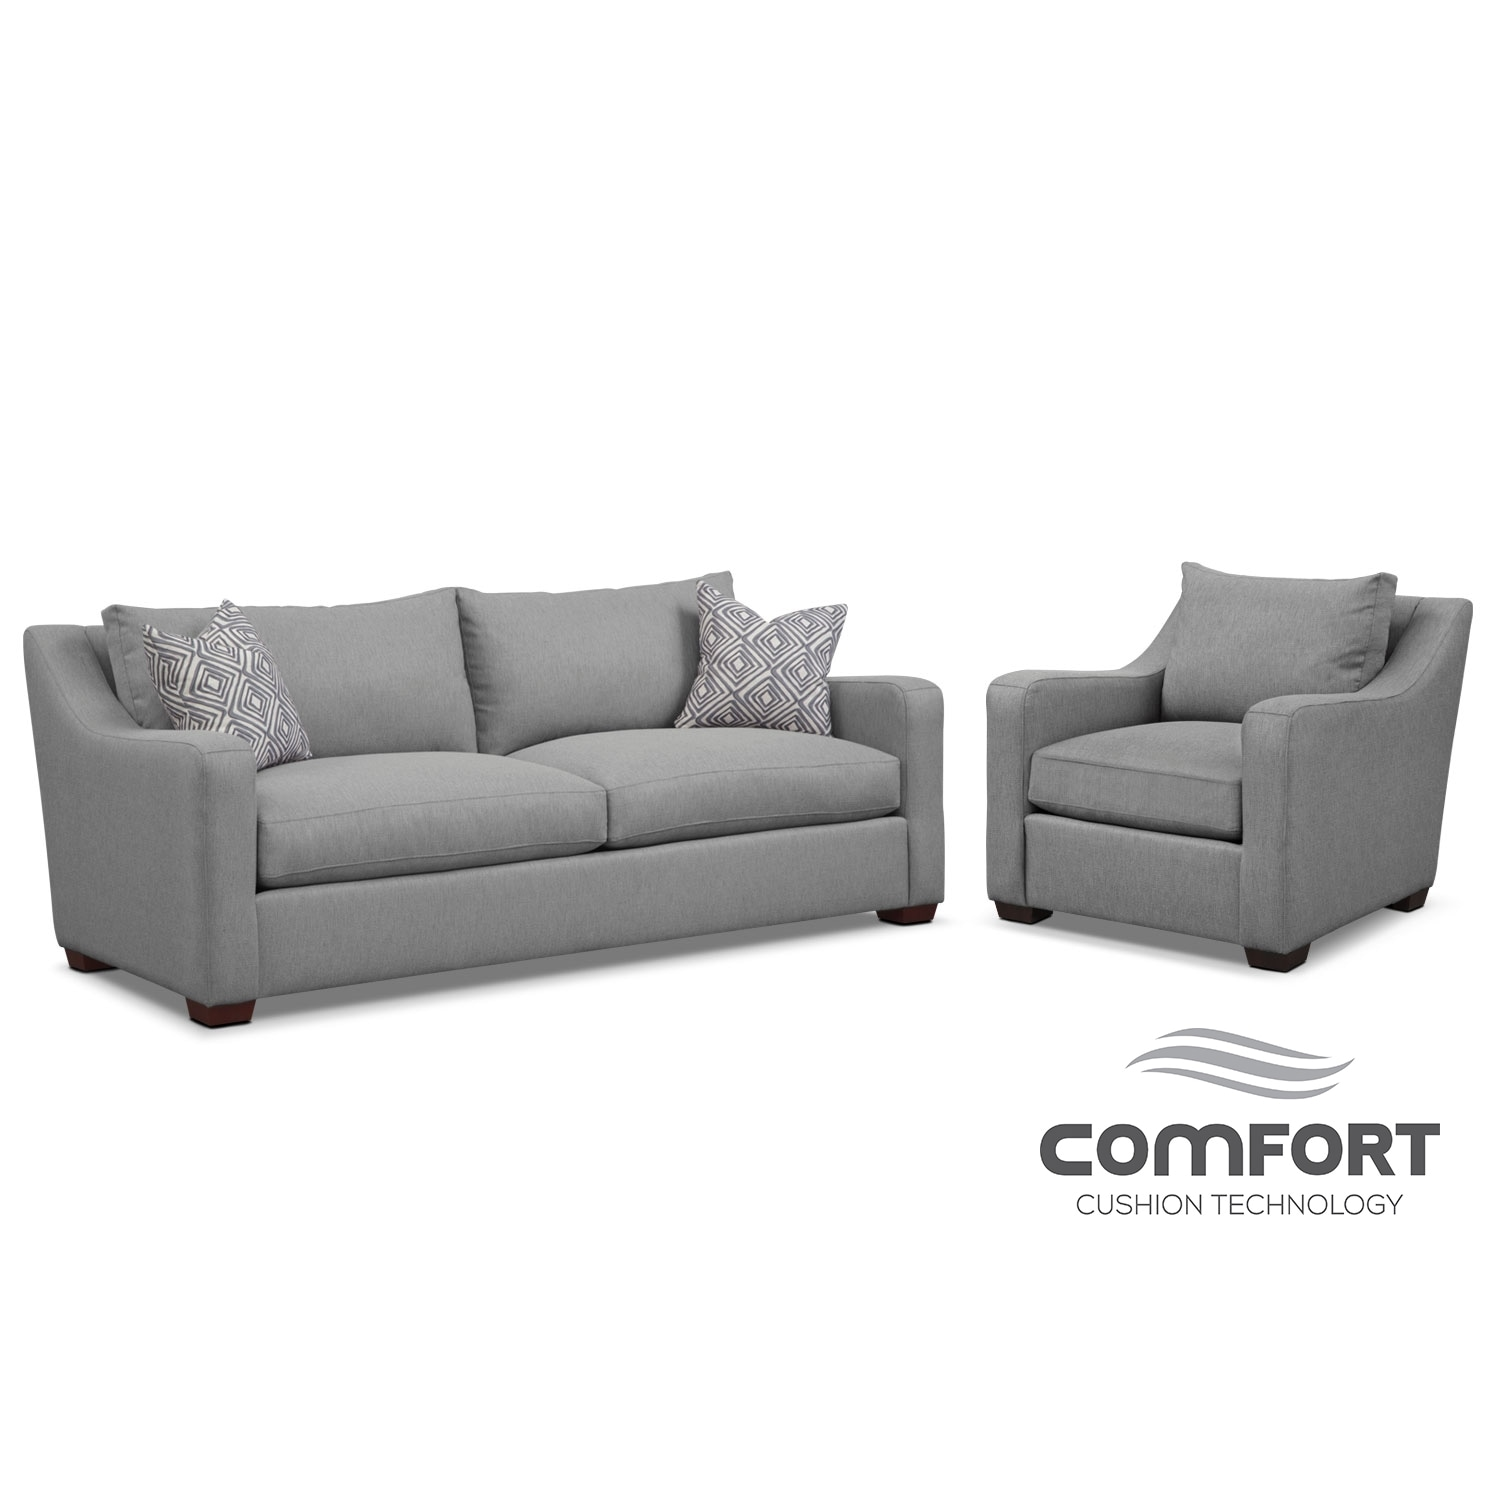 Living Room Furniture - Jules Comfort Sofa and Loveseat Set- Gray